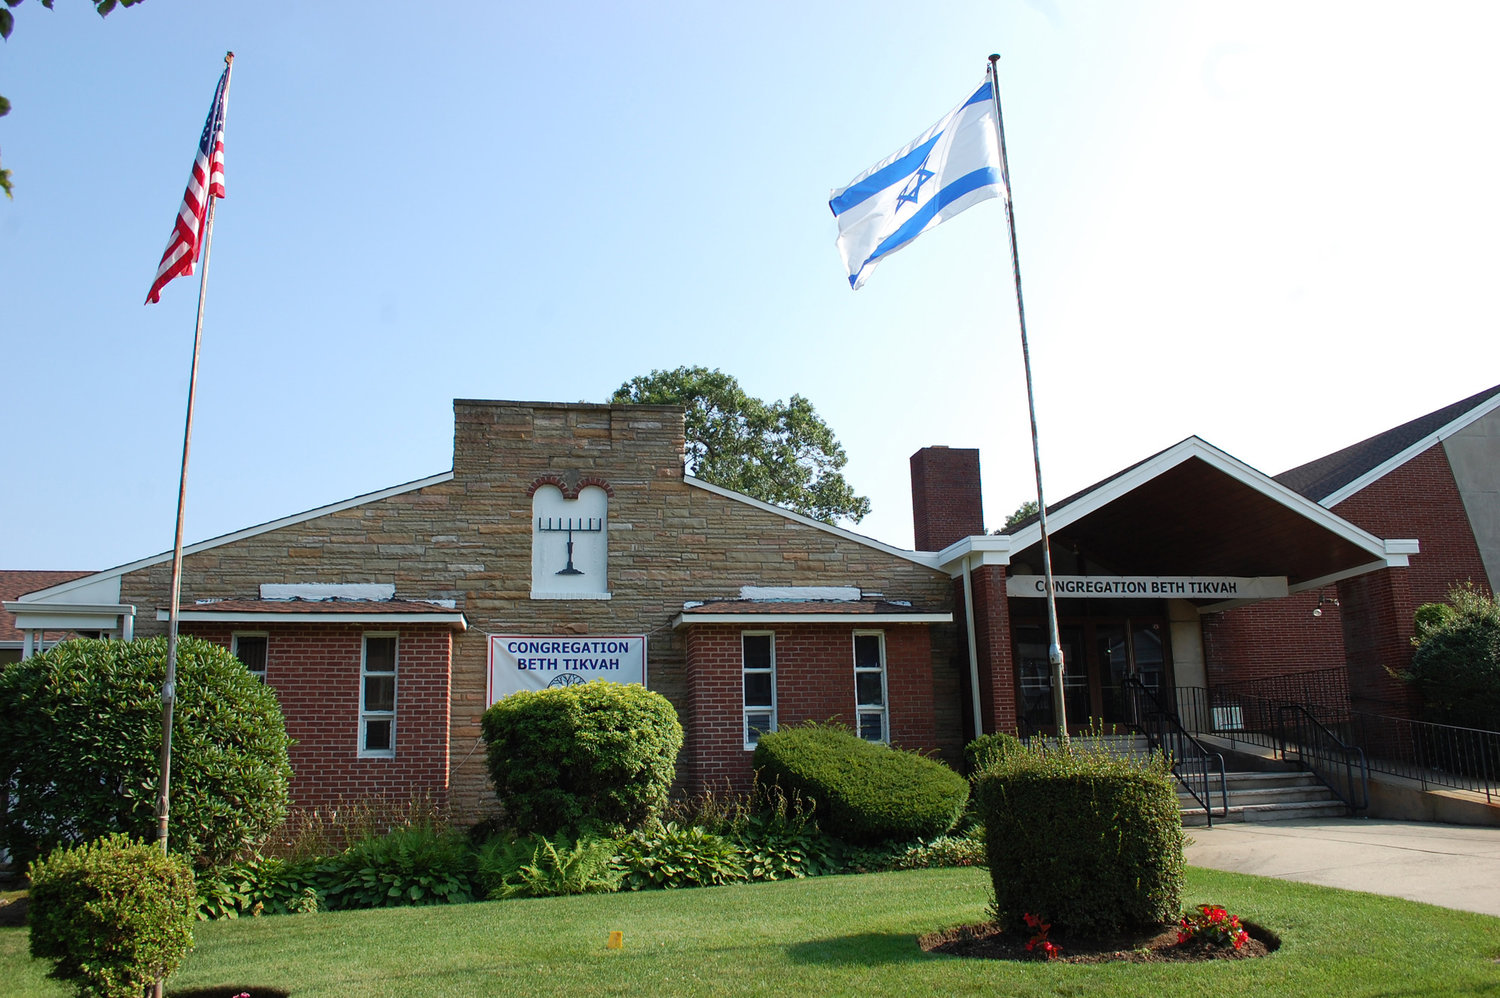 Congregation Beth Tikvah is located in Wantagh along Woodbine Avenue.